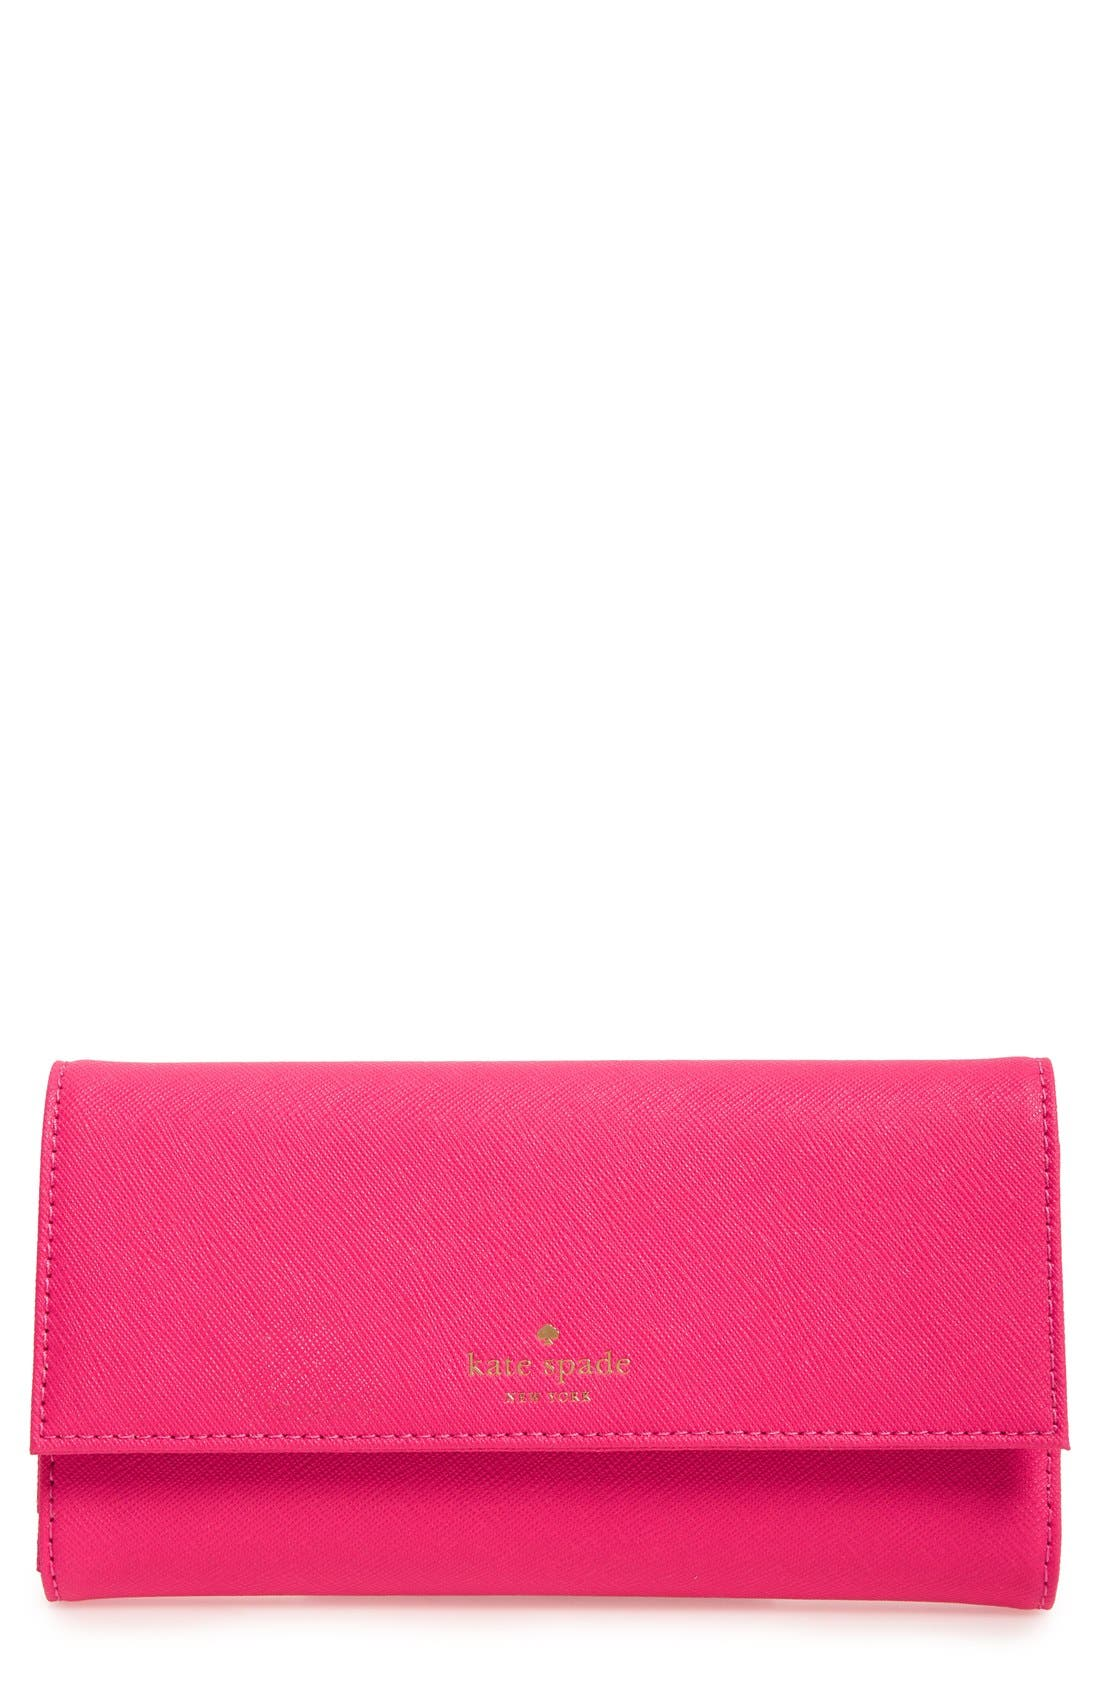 Main Image - kate spade new york leather iPhone 7 & 7 Plus wallet